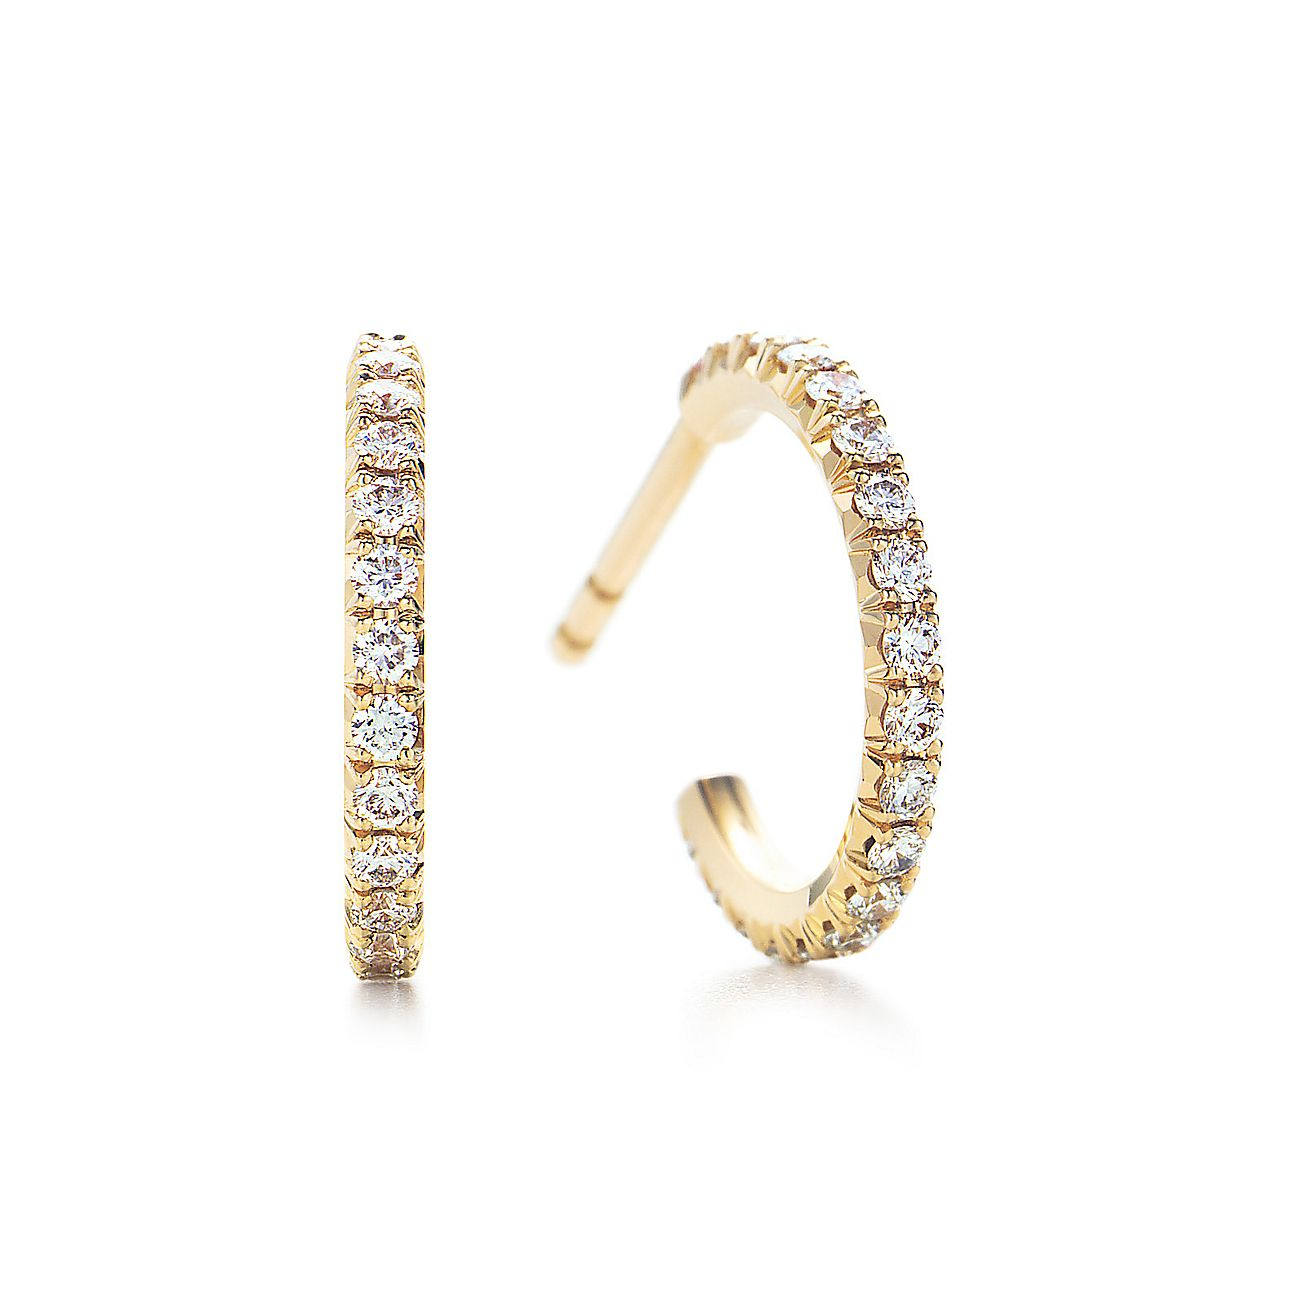 Tiffany Metro Hoop Earrings In 18k Gold With Diamonds Small Co